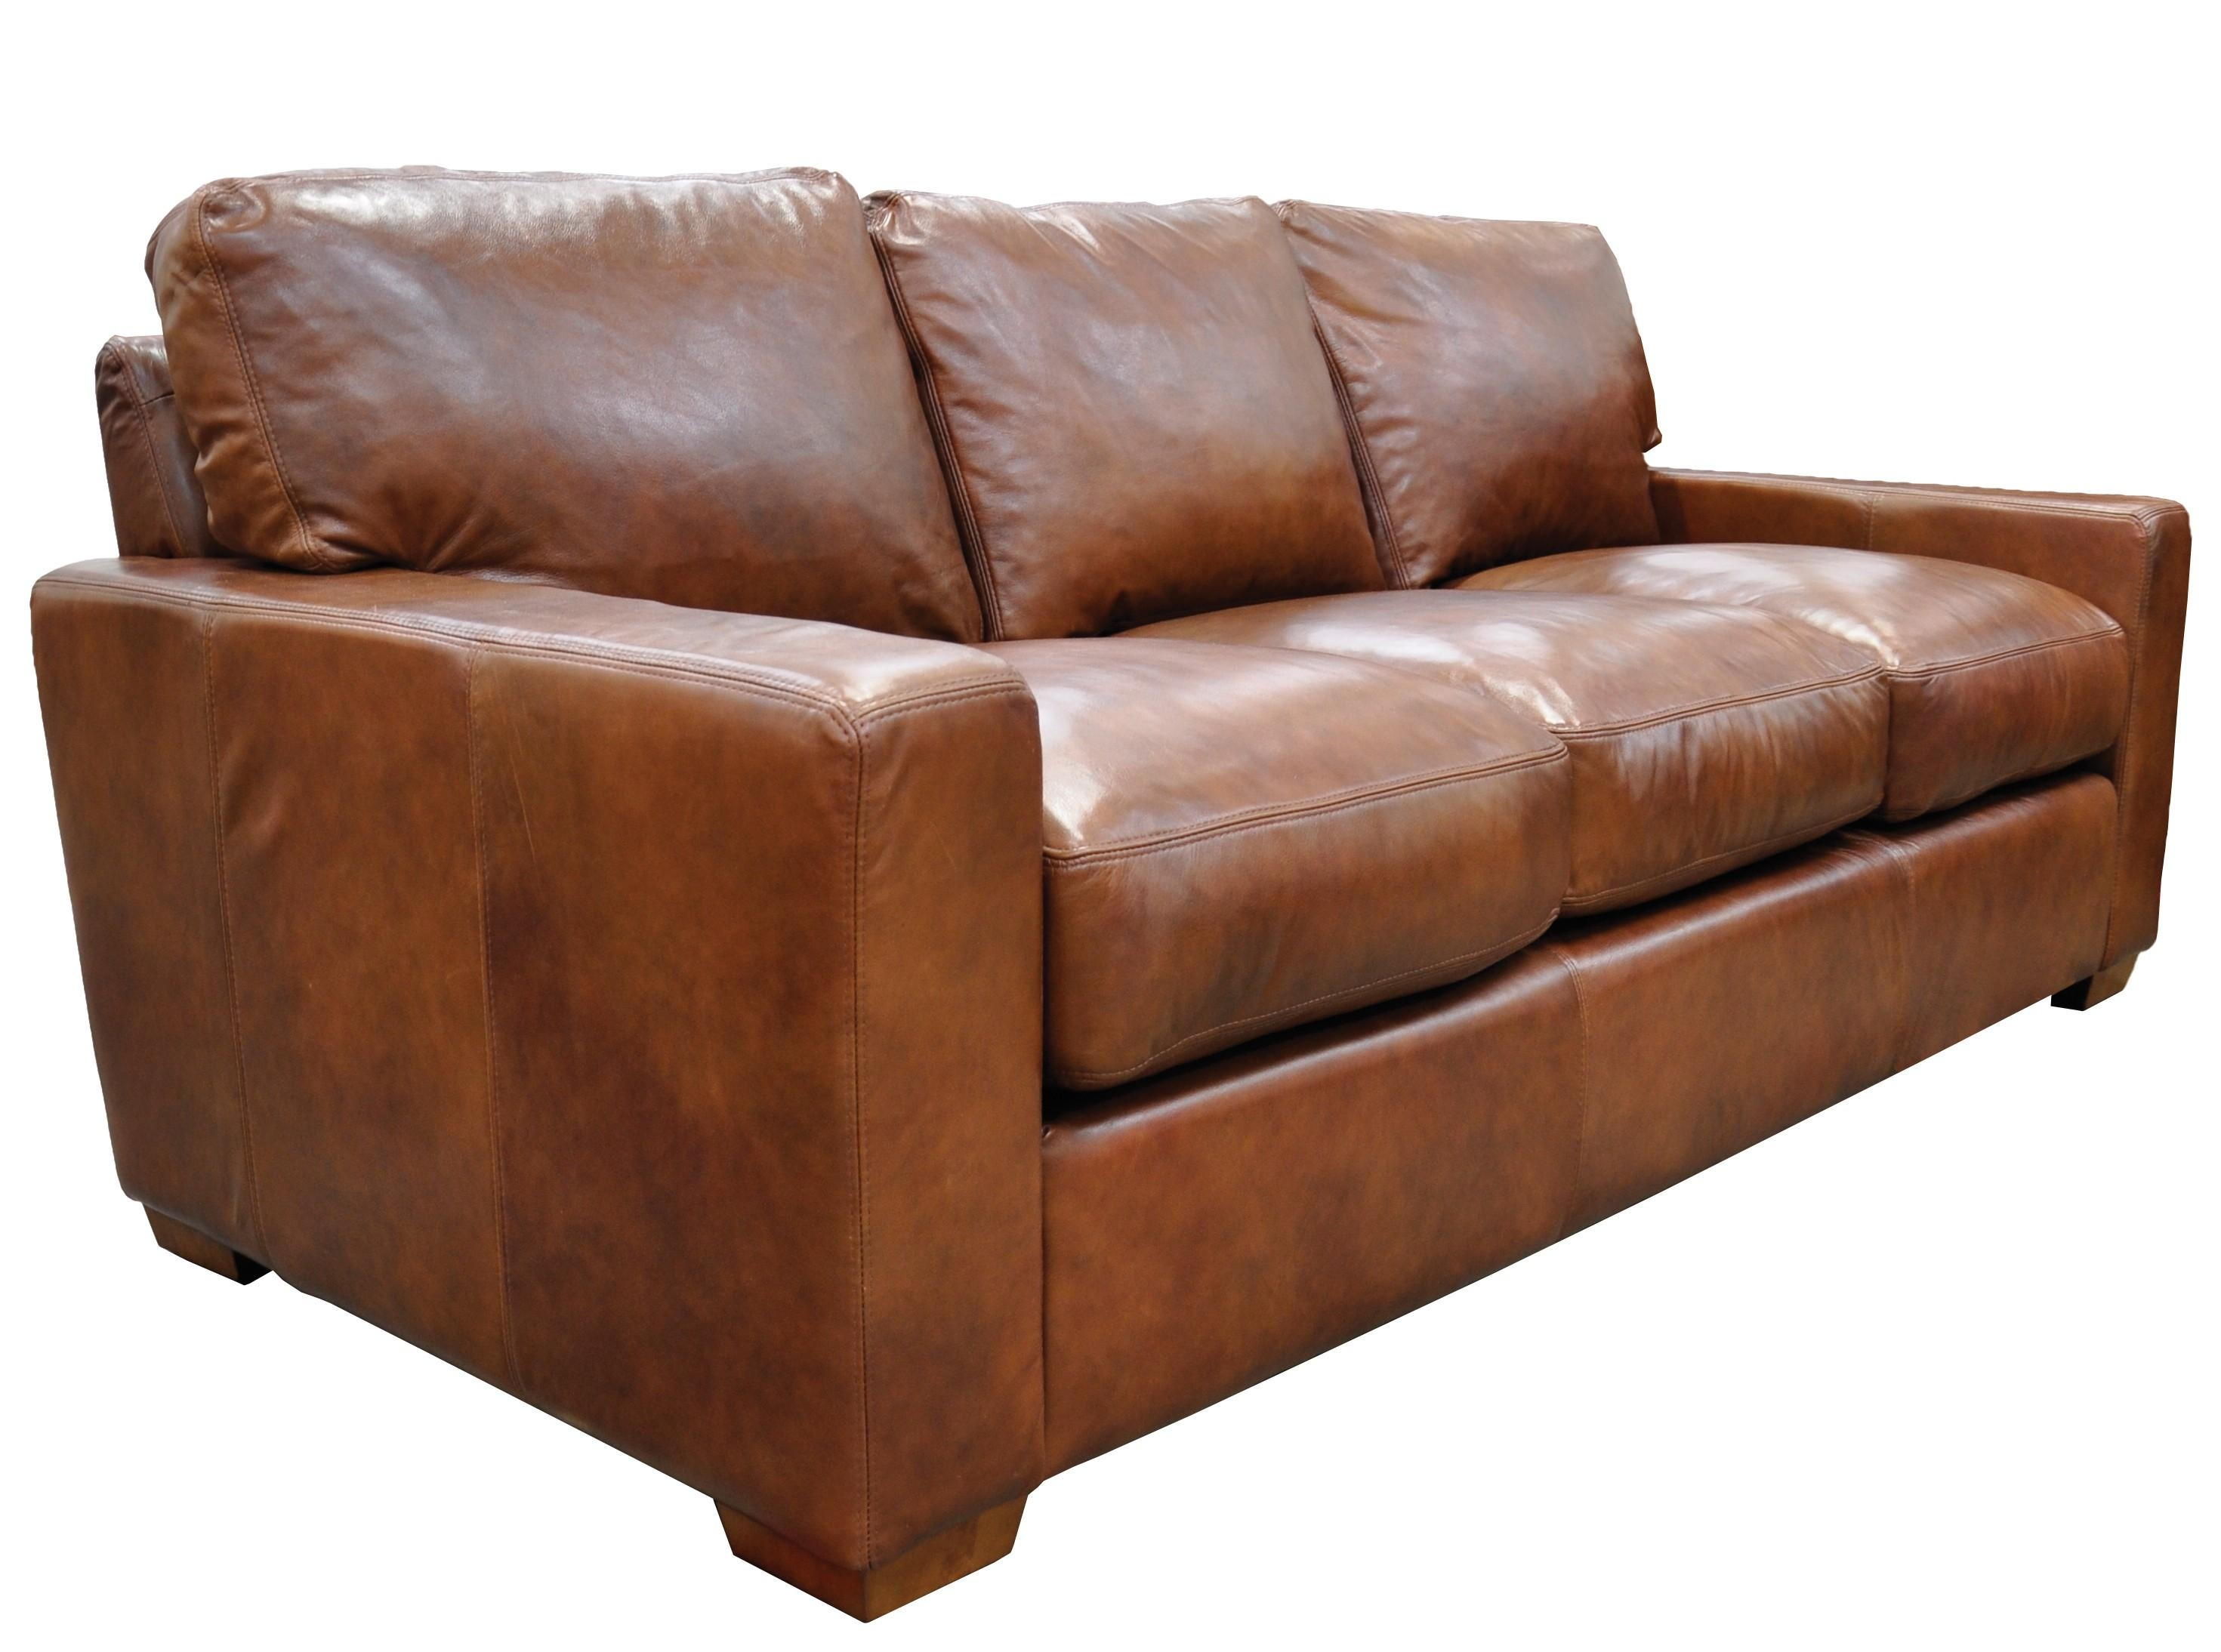 Full Grain Aniline Leather Sofa Full Grain Aniline Leather